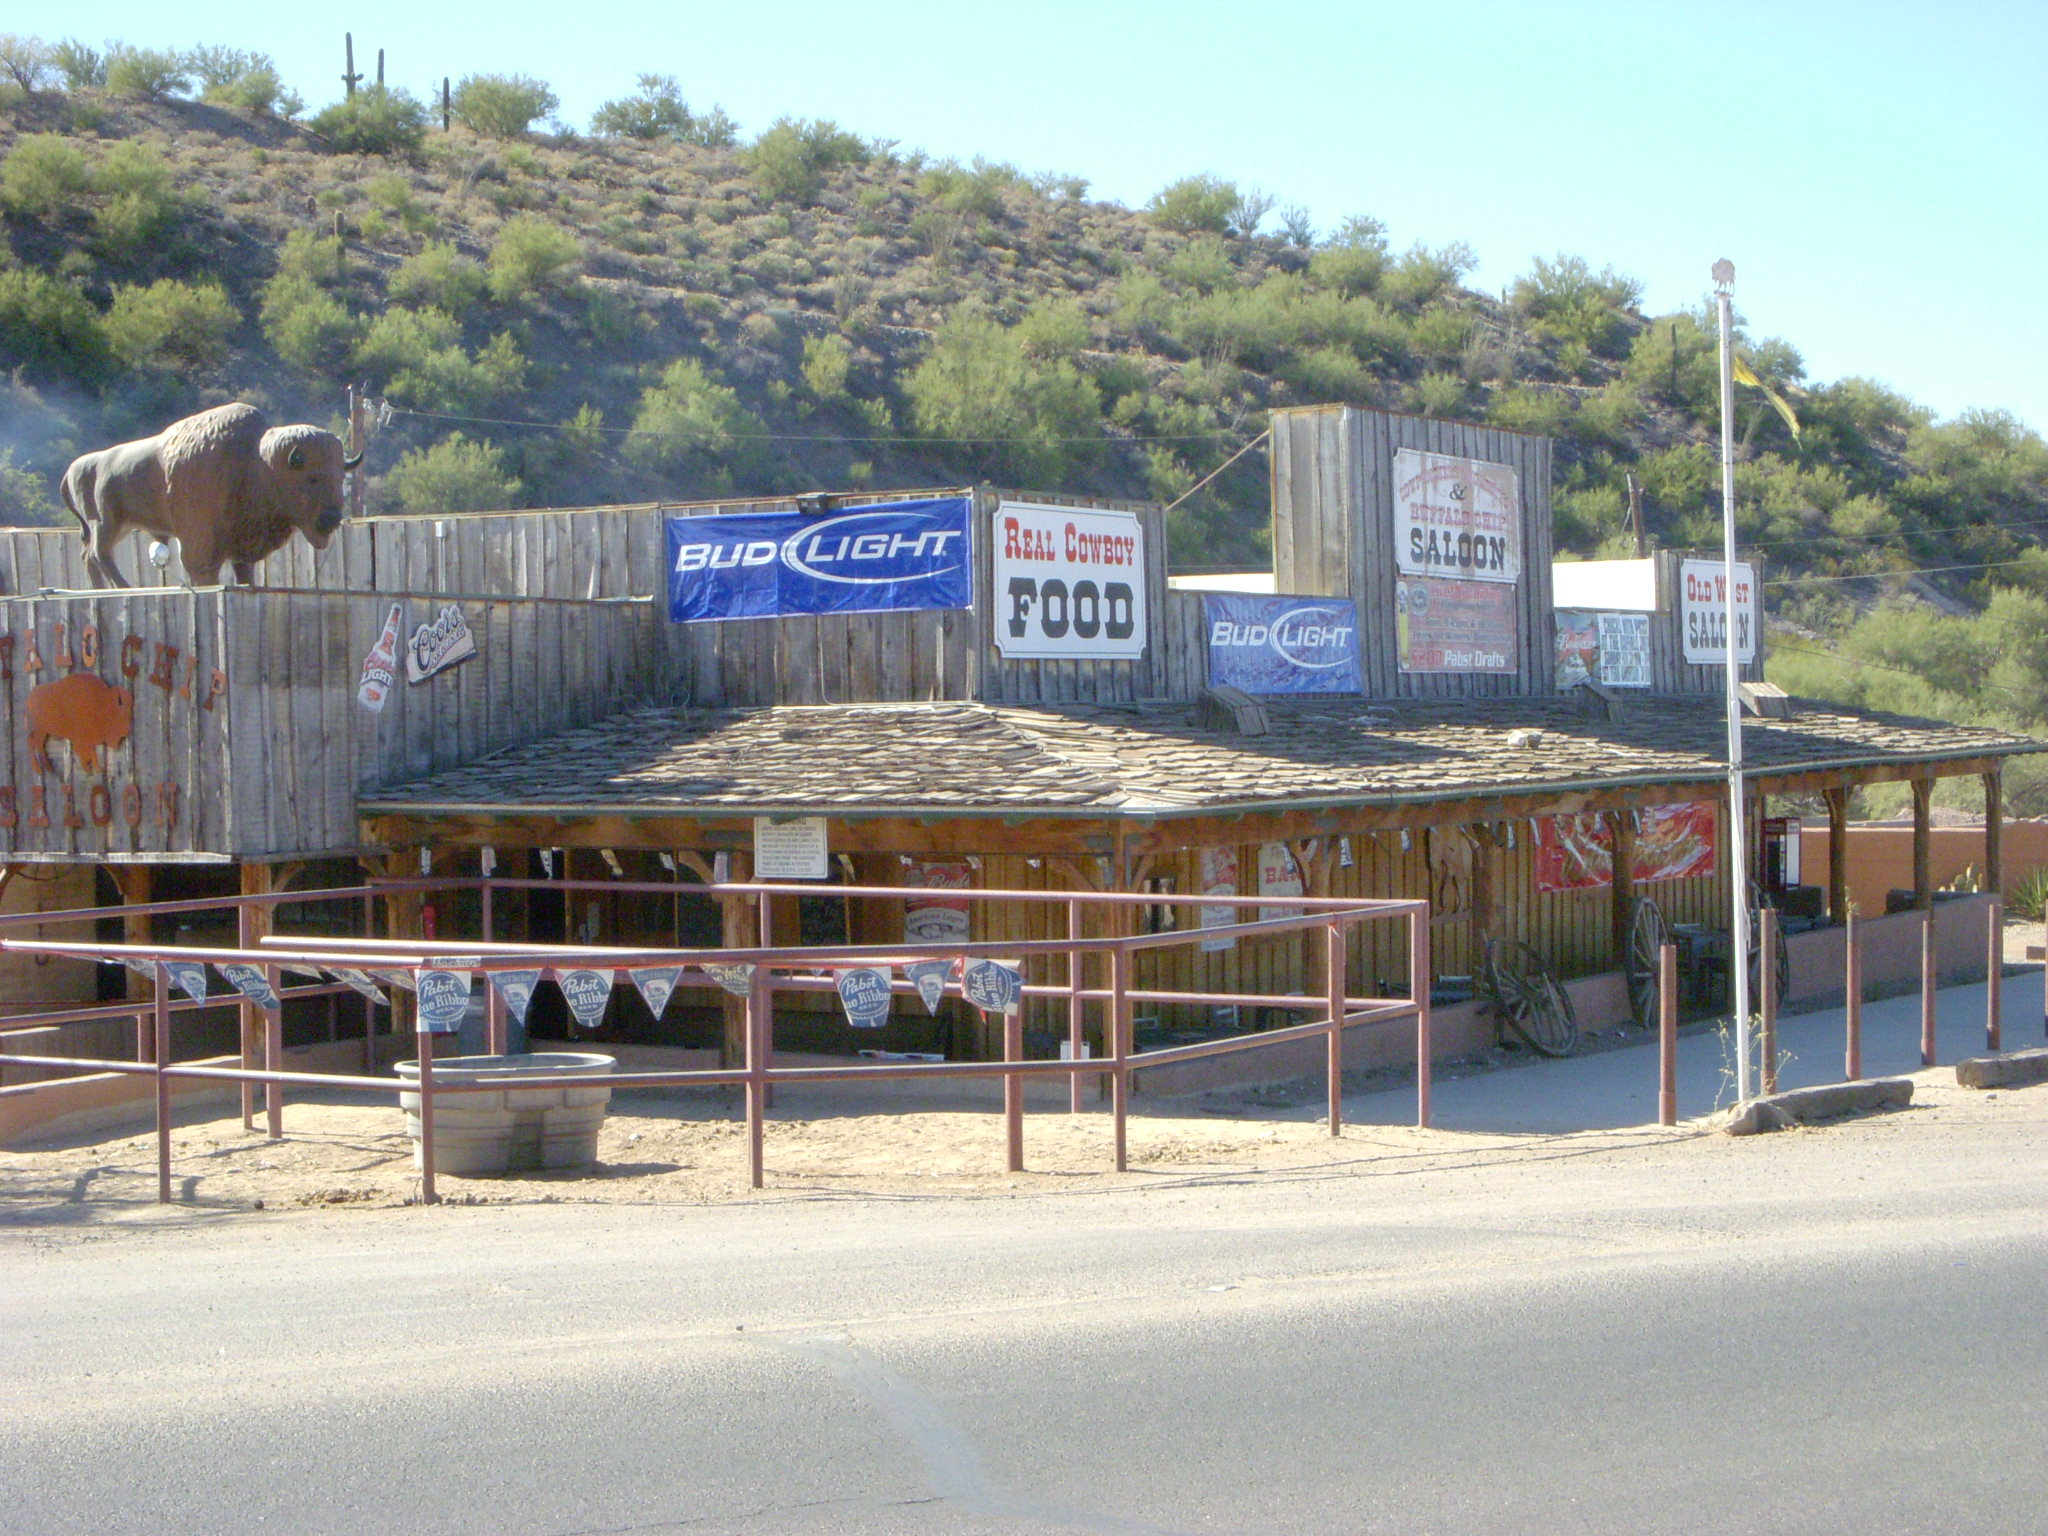 An outside view of the Buffalo Chip Saloon with horse stables in front and a large buffalo statue on a raised platform.